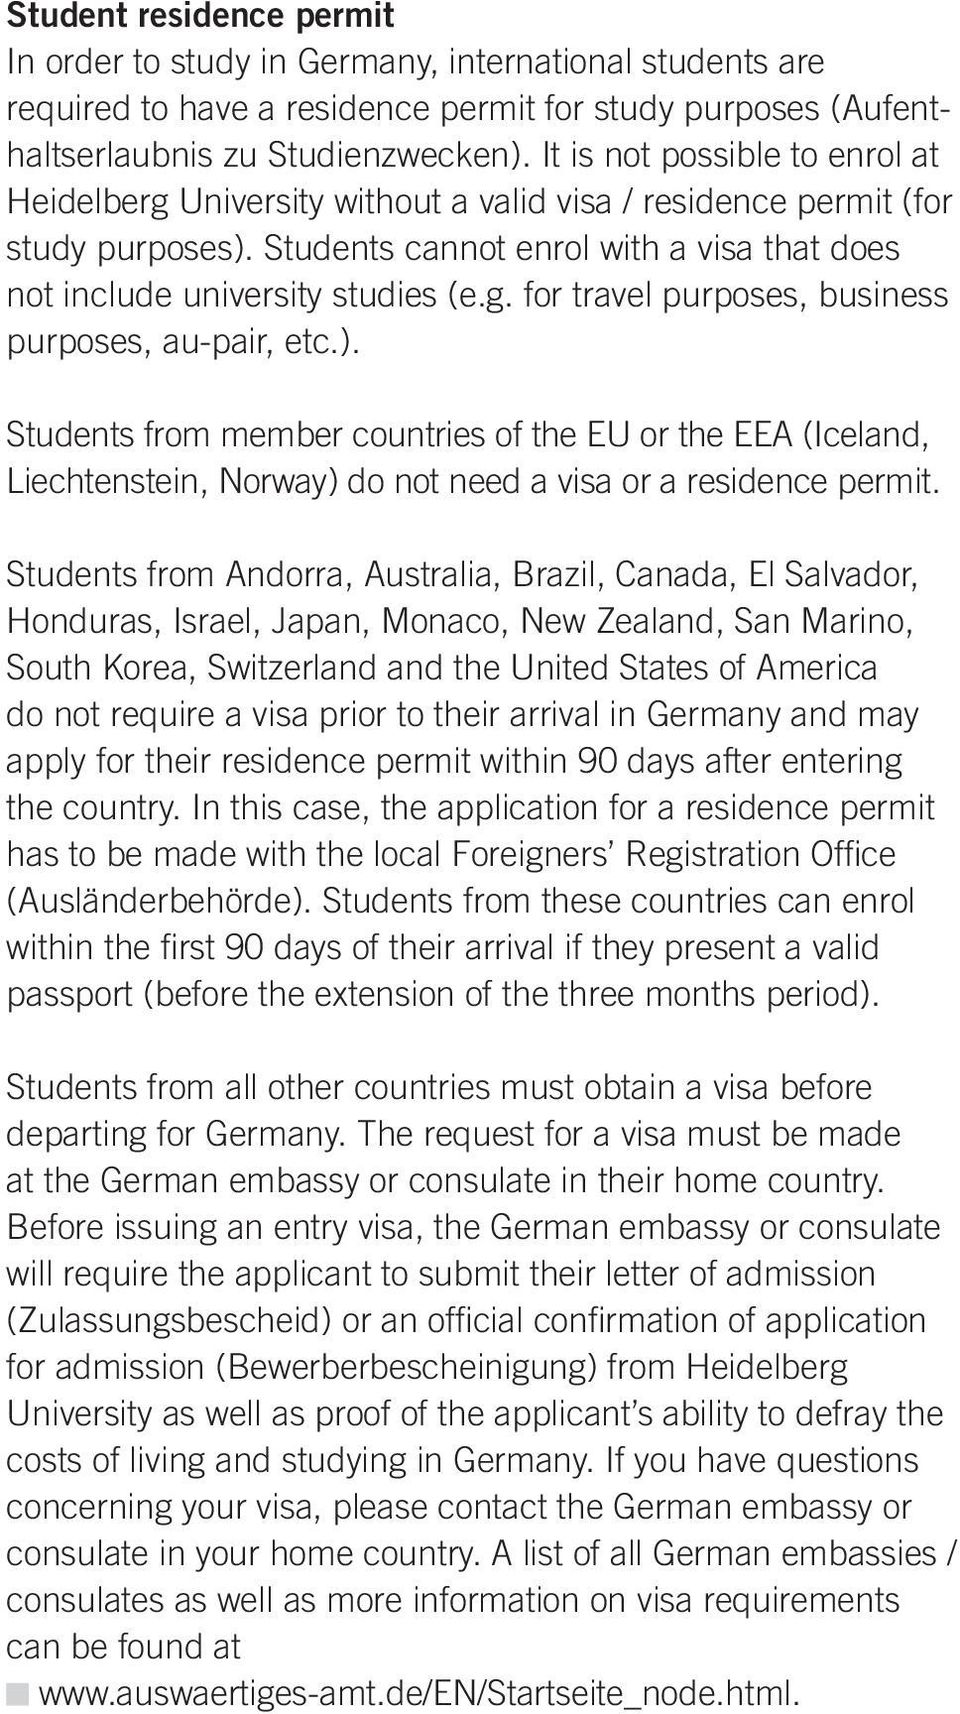 ). Students from member countries of the EU or the EEA (Iceland, Liechtenstein, Norway) do not need a visa or a residence permit.